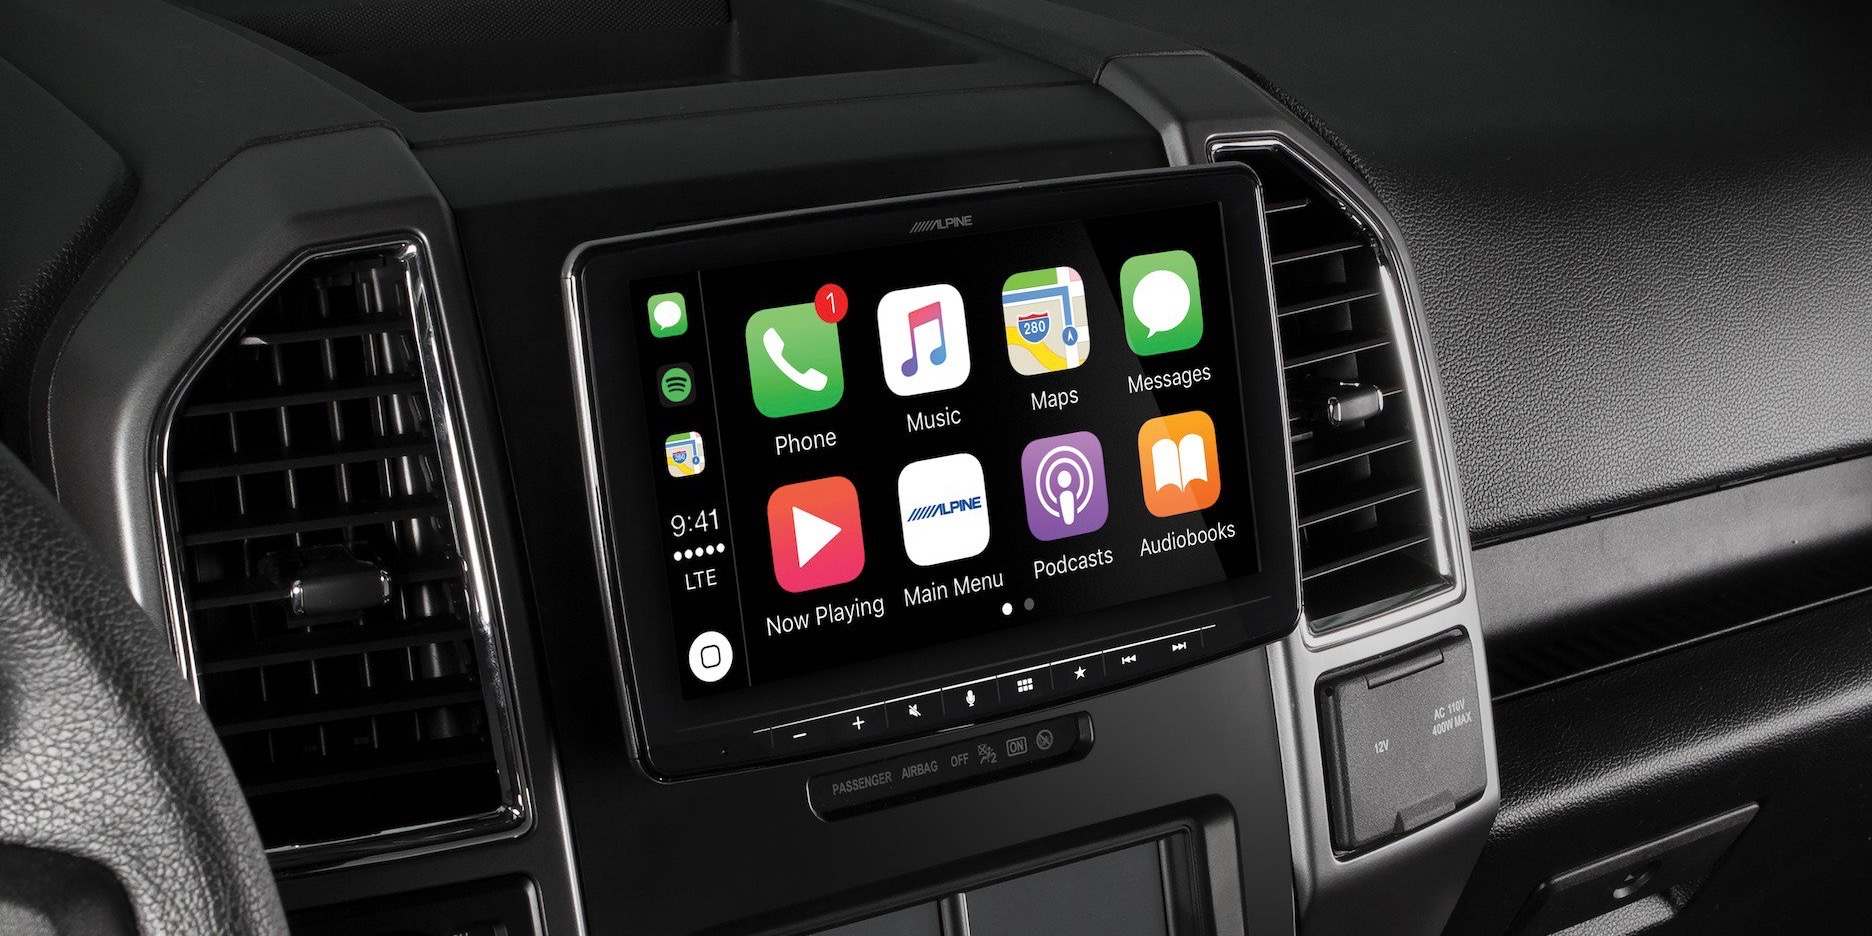 Alpine unveils first 9-inch CarPlay head unit with floating design fit for most cars